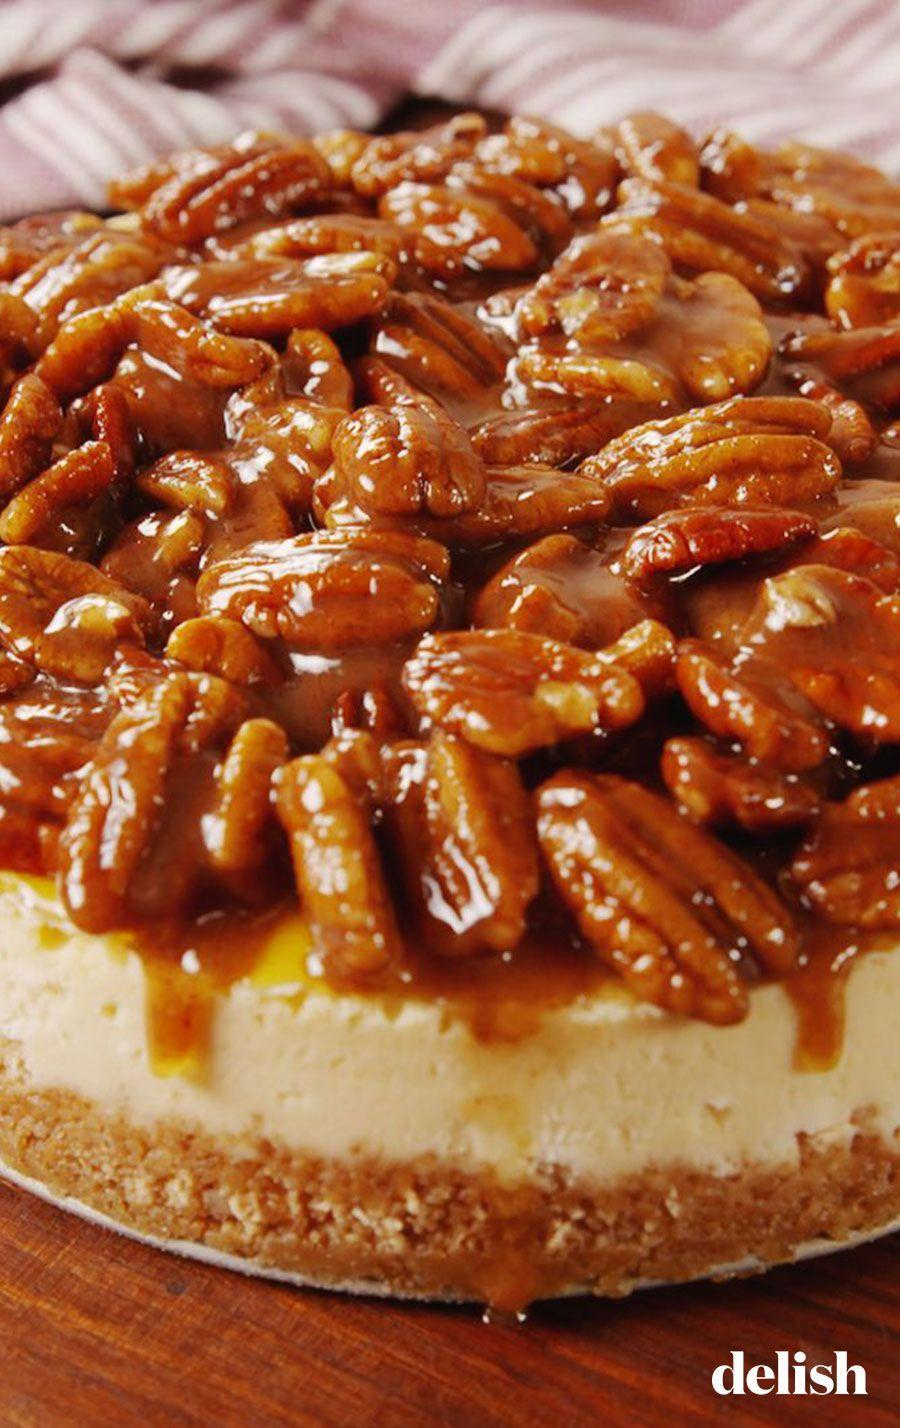 "<p>Fact: Cheesecake is better slathered in pecan pie filling. </p><p>Get the recipe from <a href=""https://www.delish.com/cooking/recipe-ideas/a56639/pecan-pie-cheesecake-recipe/"" rel=""nofollow noopener"" target=""_blank"" data-ylk=""slk:Delish"" class=""link rapid-noclick-resp"">Delish</a>.</p>"